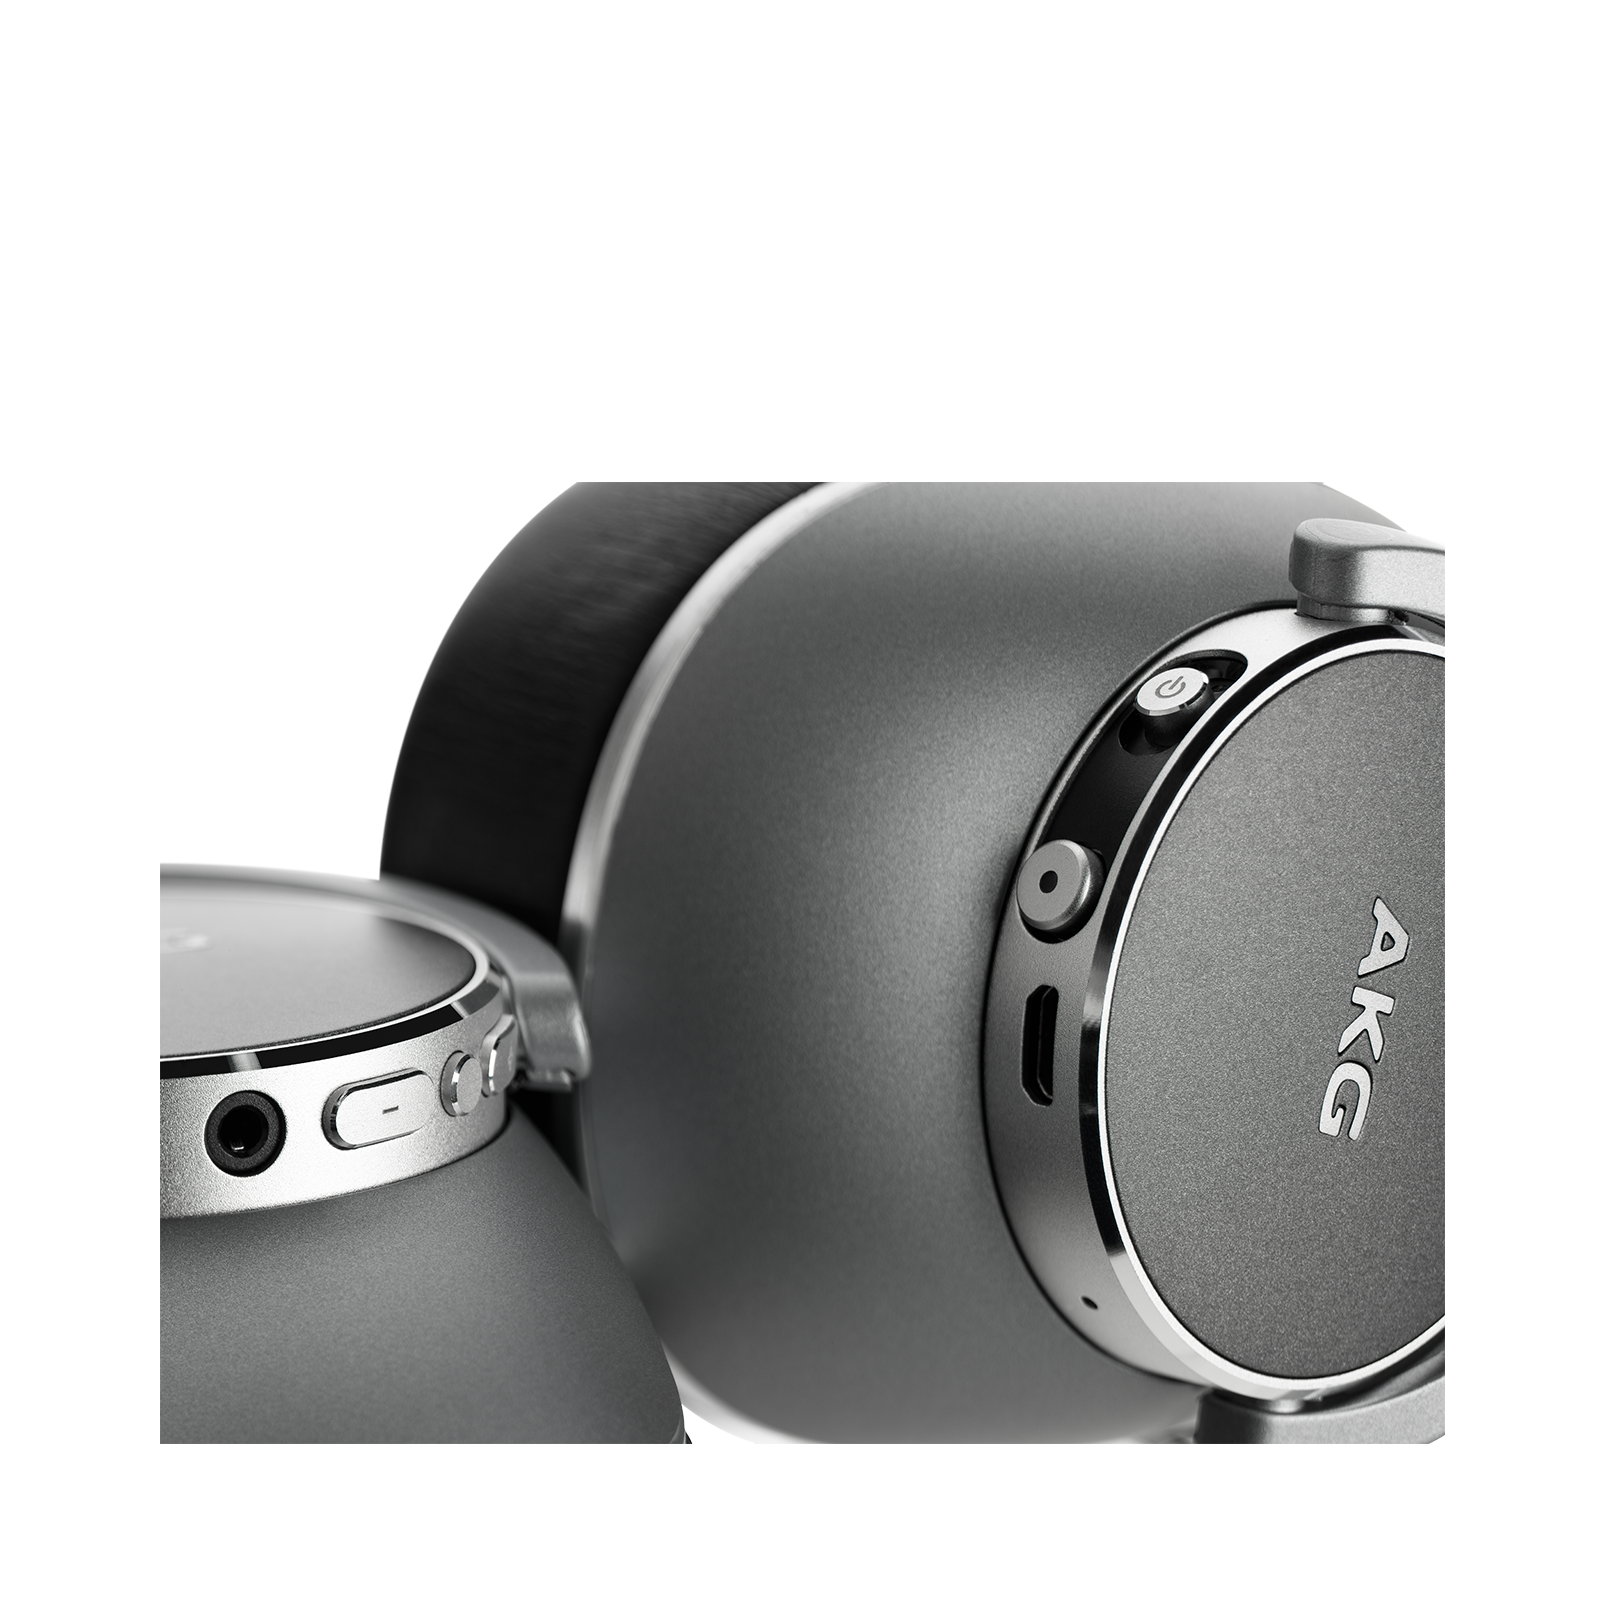 AKG N700NC Wireless - Silver - Wireless, Adaptive Noise Cancelling Headphones - Detailshot 2